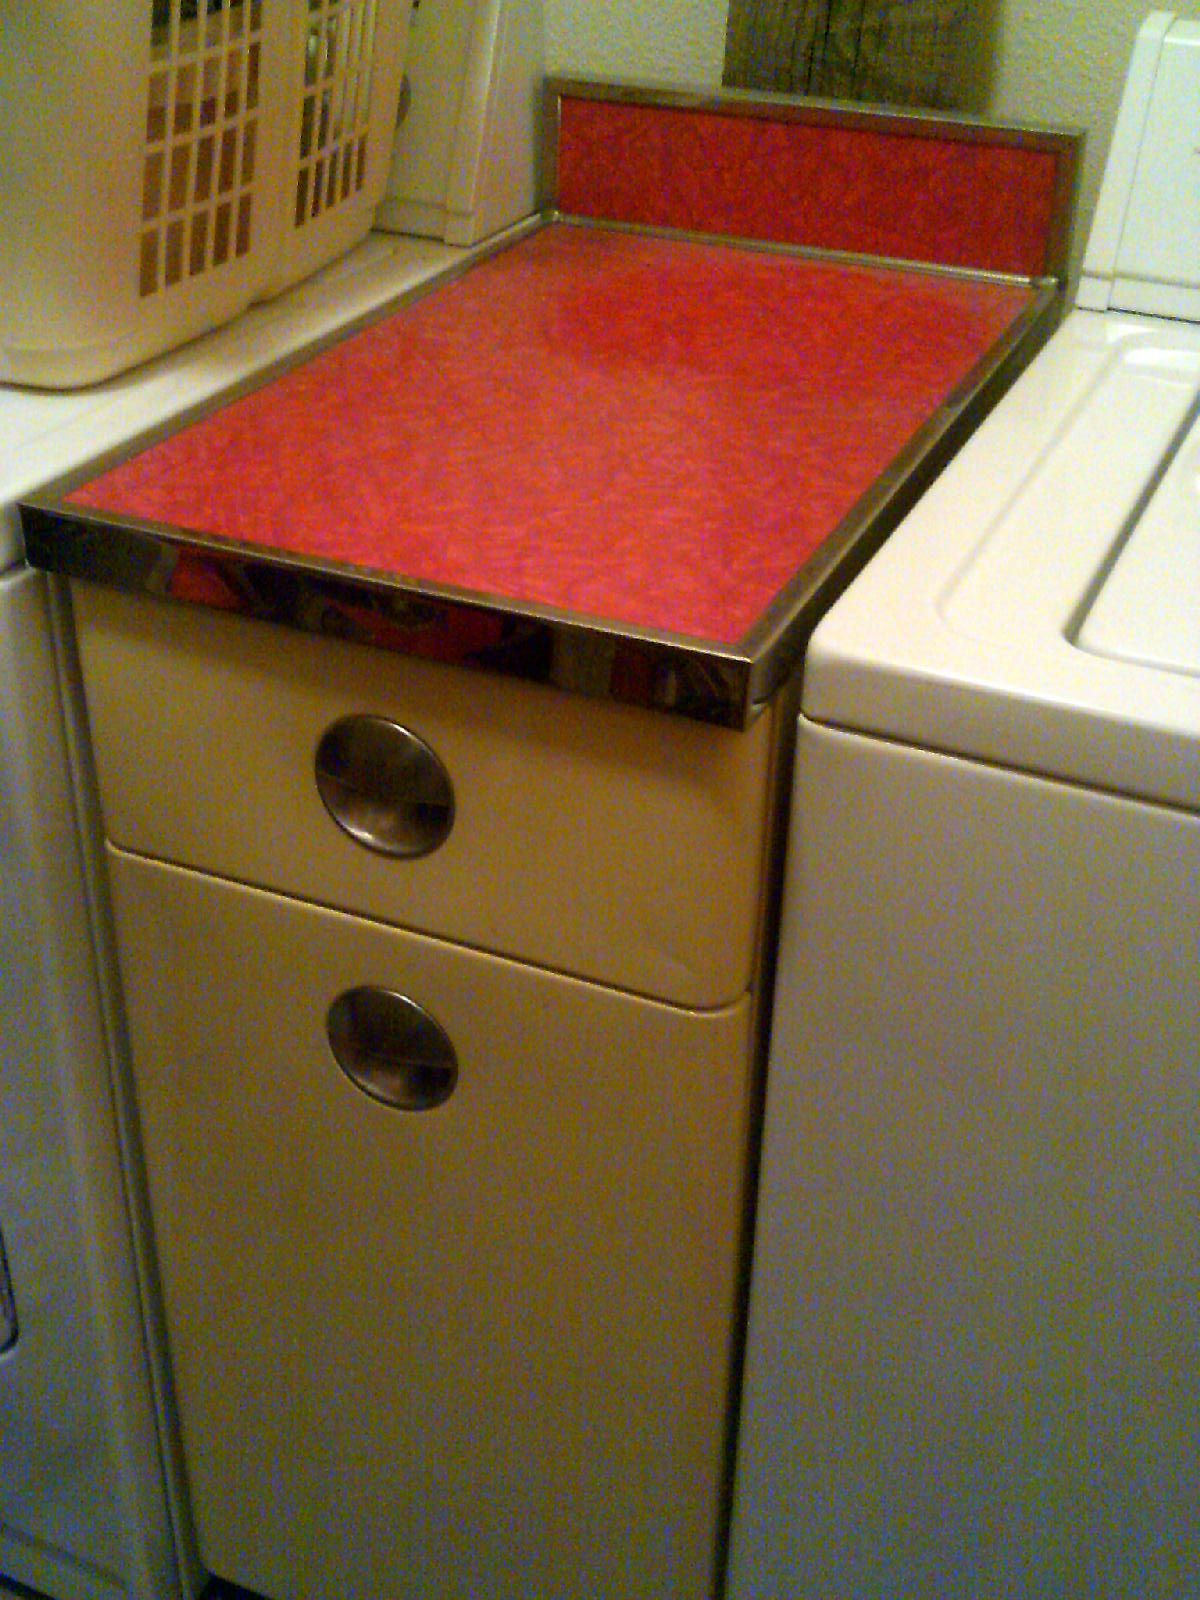 Sears Roebuck And Co Homart Customatched Sink Cabinet Found At Goodwill With Half Price Color Tag For 2 Kitchen Renovation Design Homart Kitchen Renovation